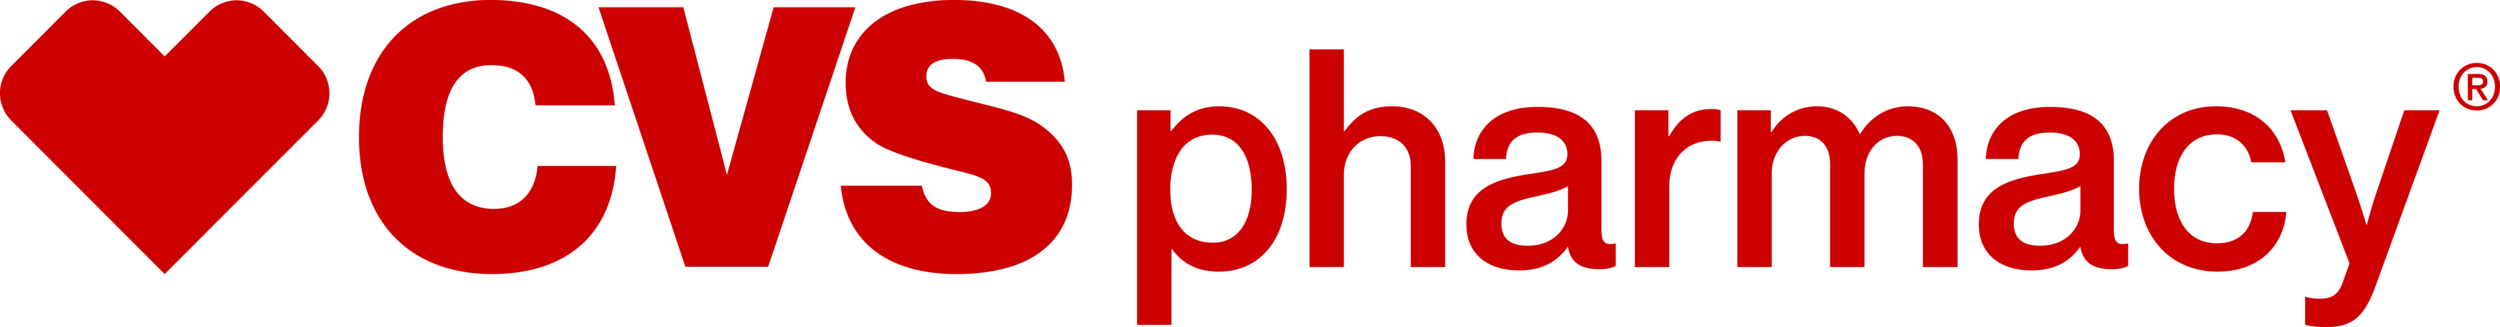 cvs-pharmacy-logo_0.png